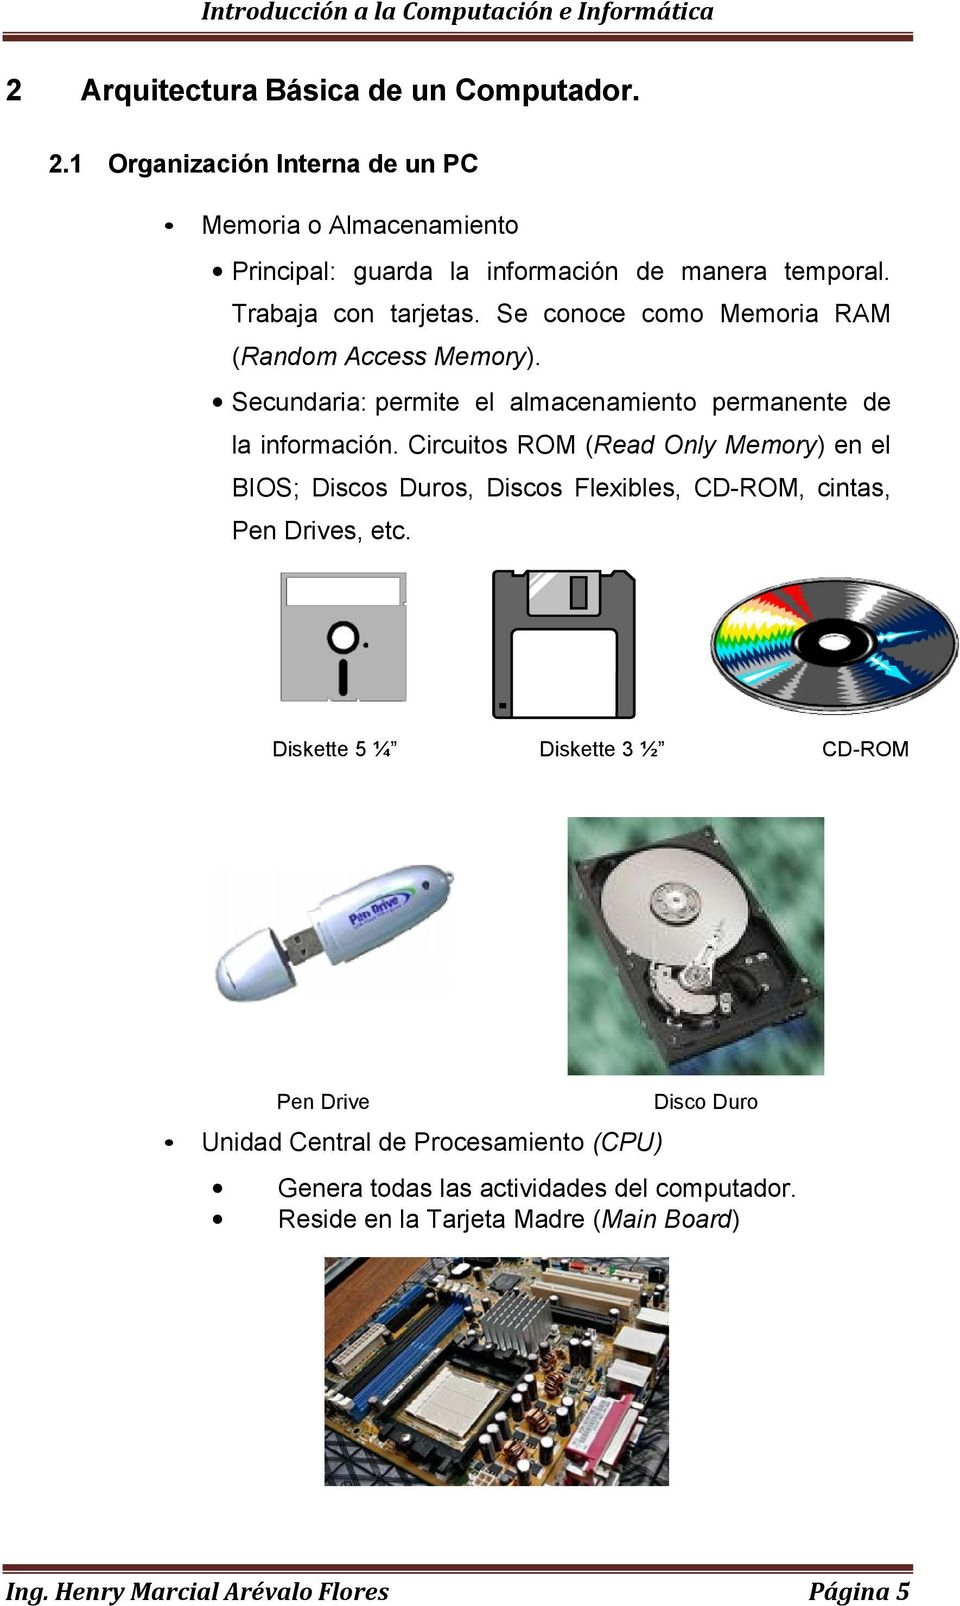 Circuitos ROM (Read Only Memory) en el BIOS; Discos Duros, Discos Flexibles, CD-ROM, cintas, Pen Drives, etc.